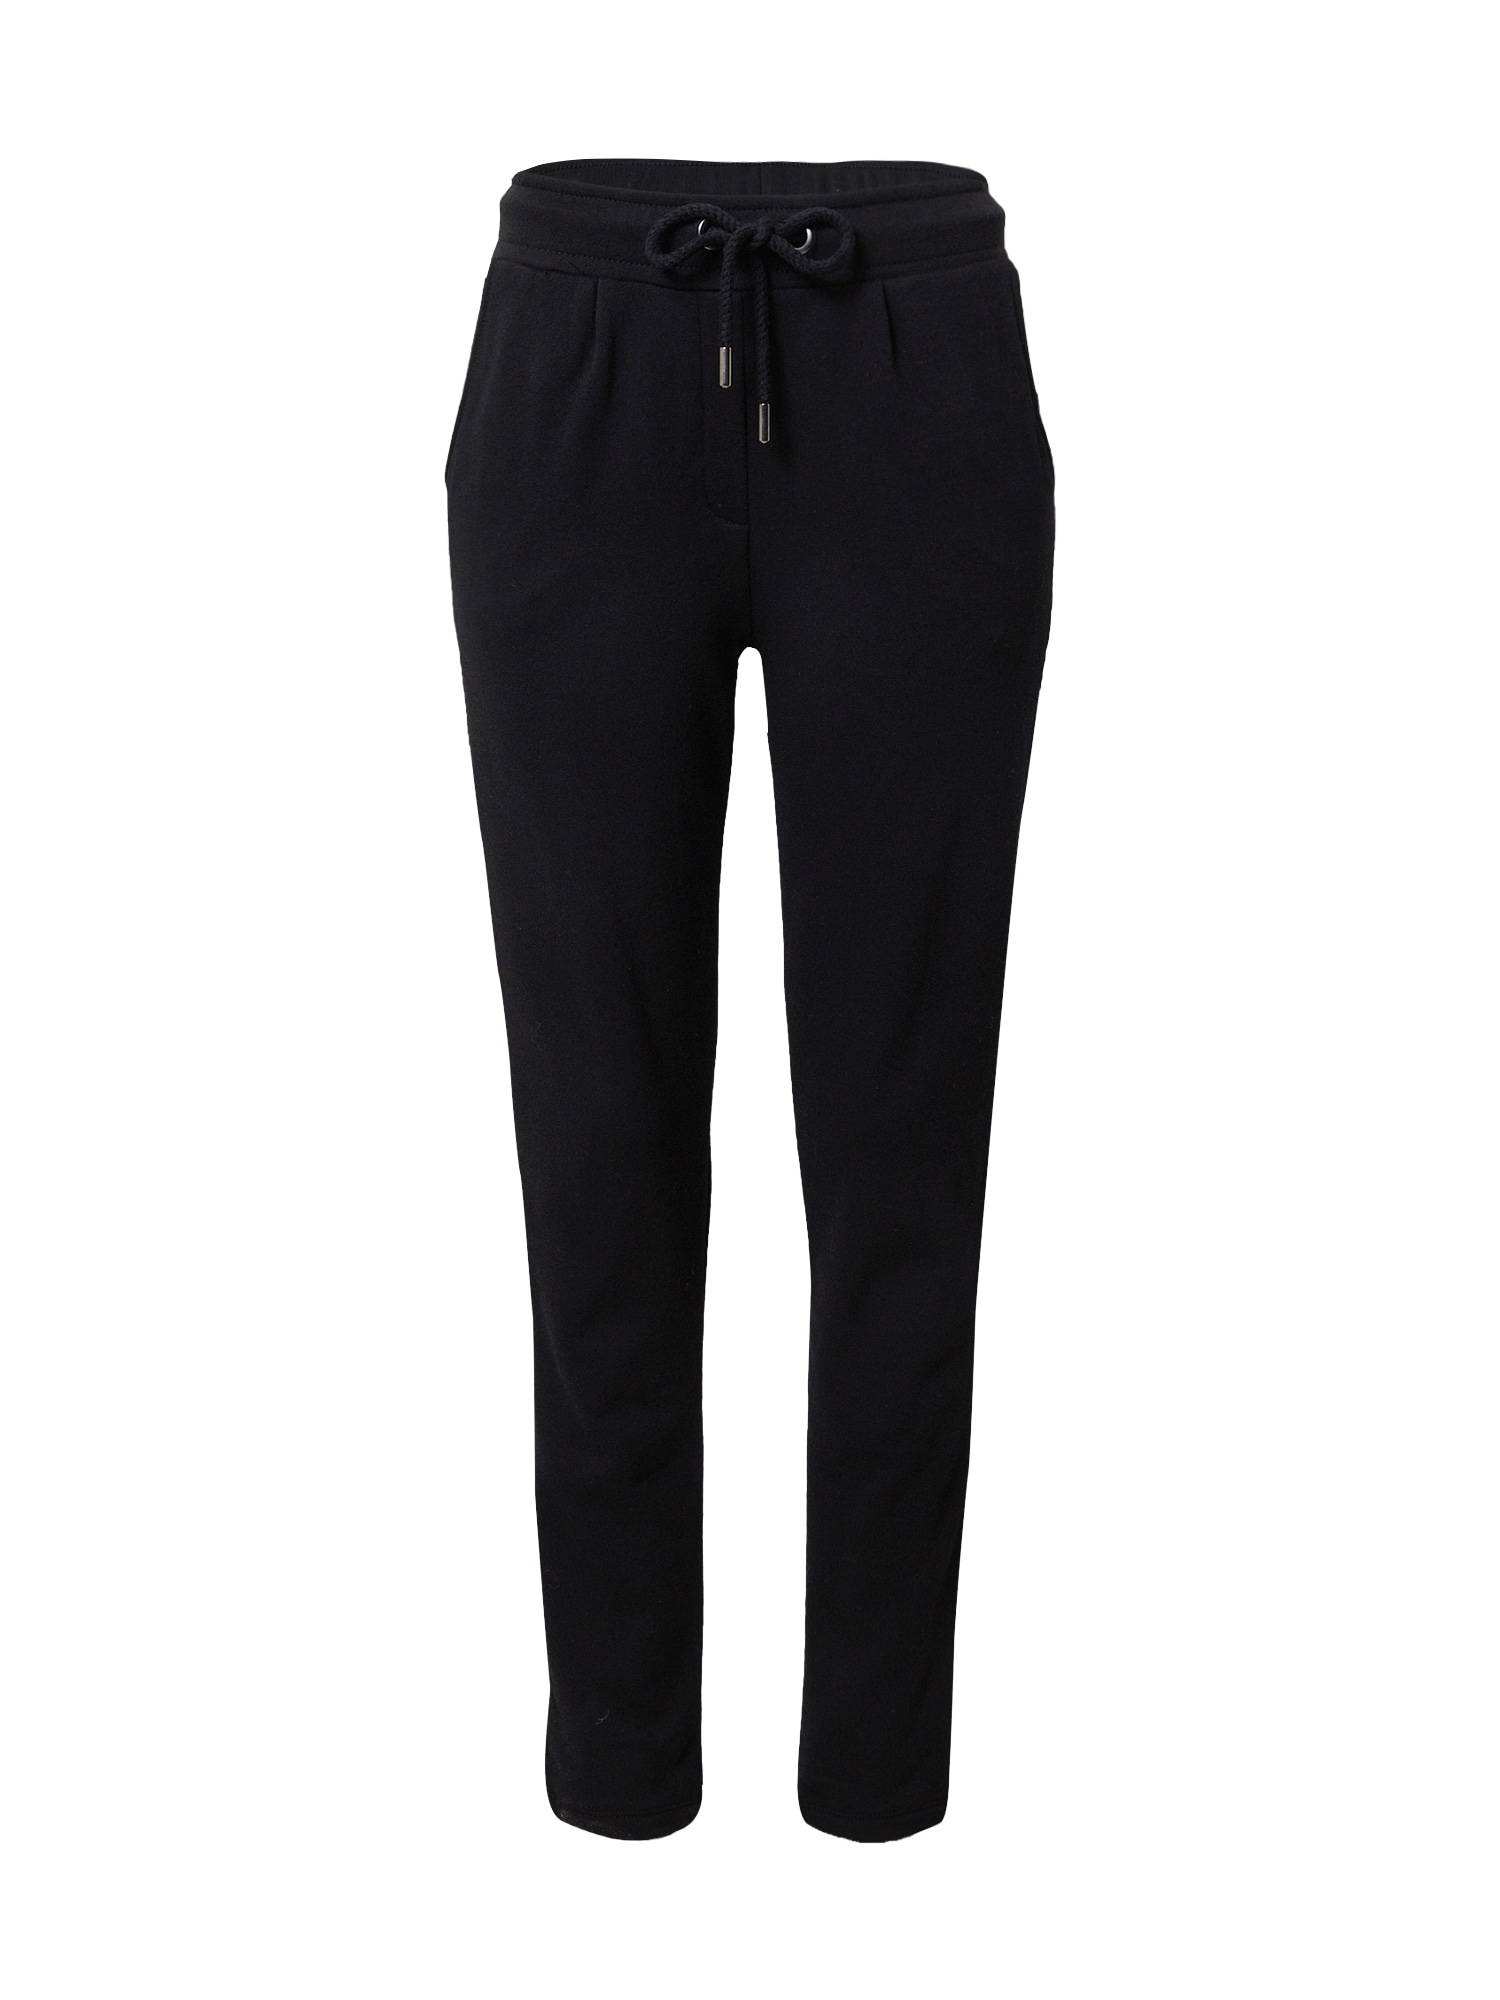 Princess Pantalon à pince  - Noir - Taille: M - female